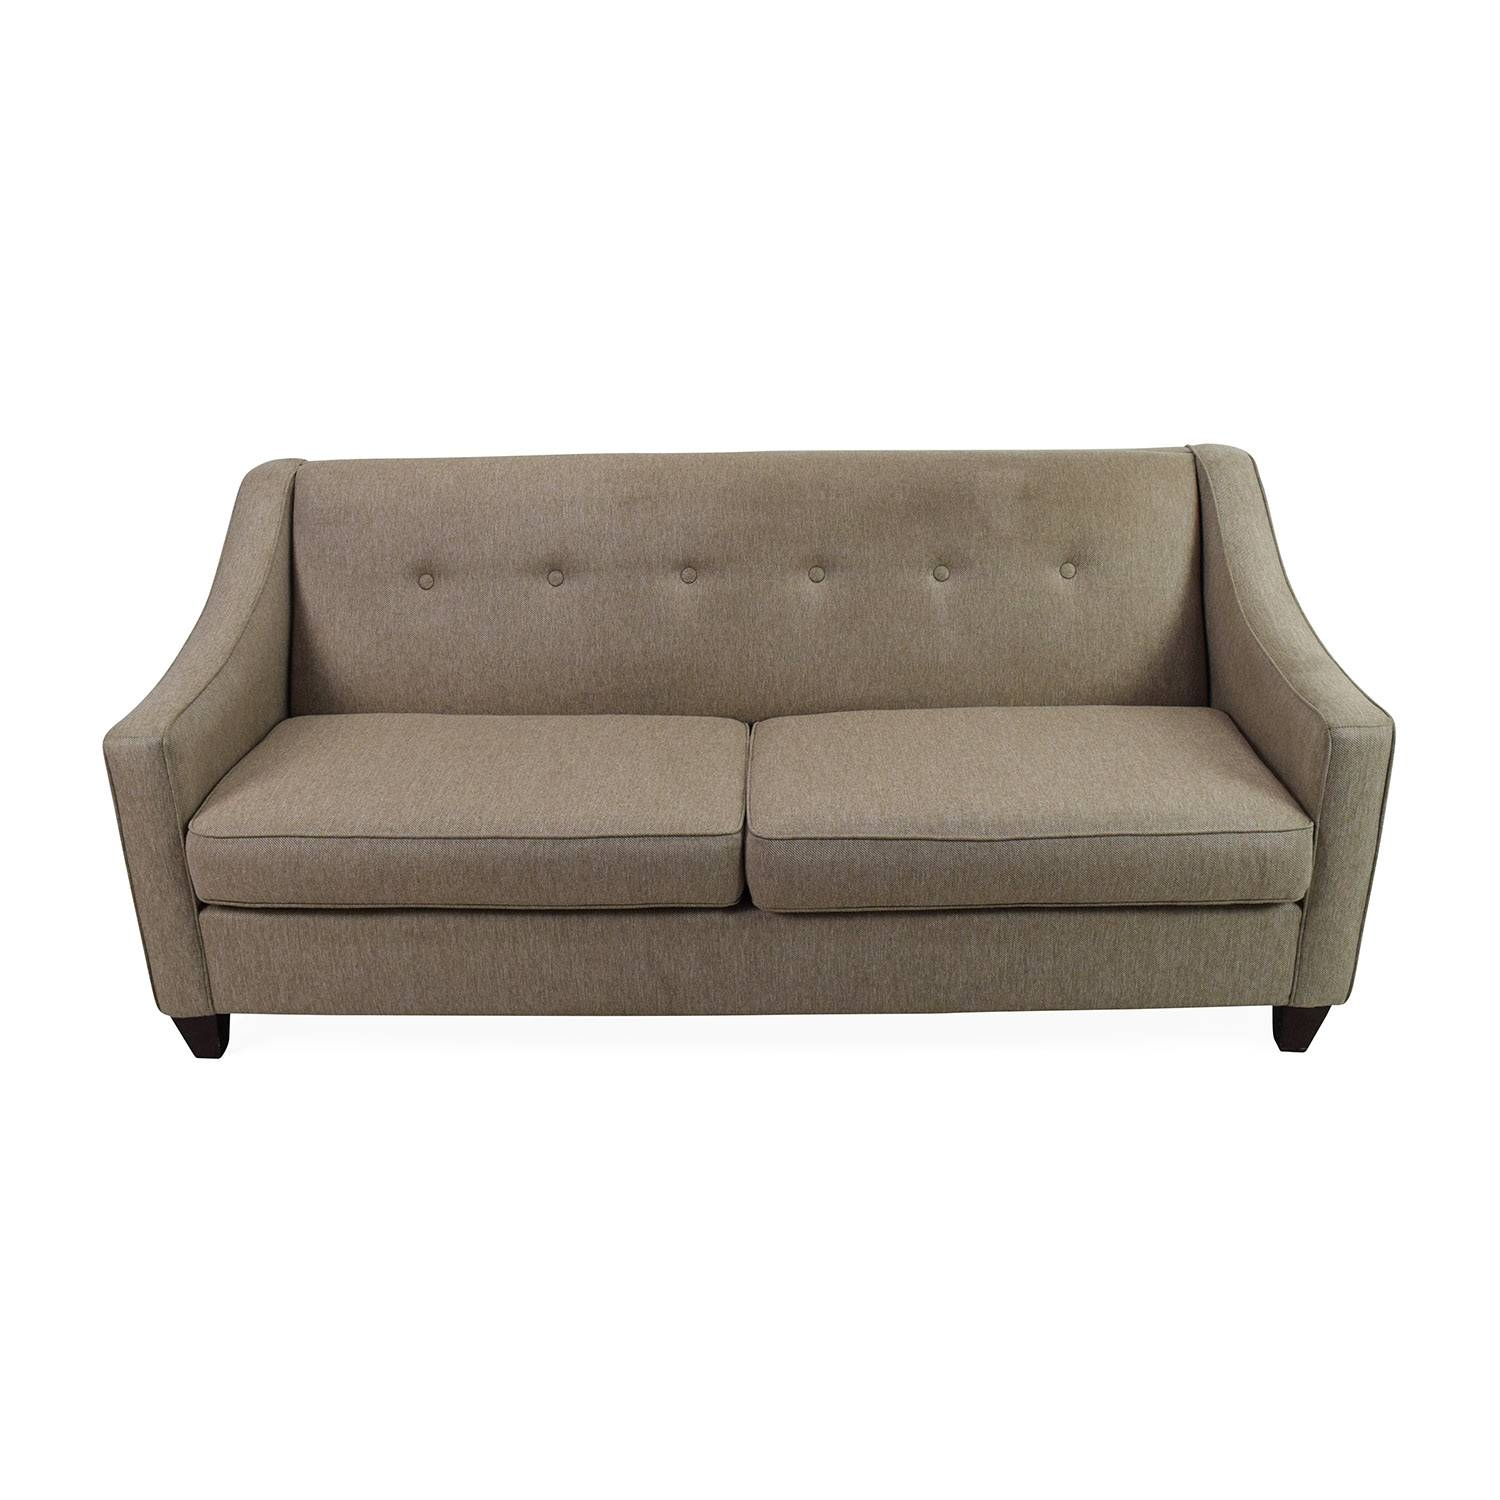 81% Off - Raymour And Flanigan Raymour & Flanigan Ashton Sofa / Sofas for Ashton Sofas (Image 6 of 15)